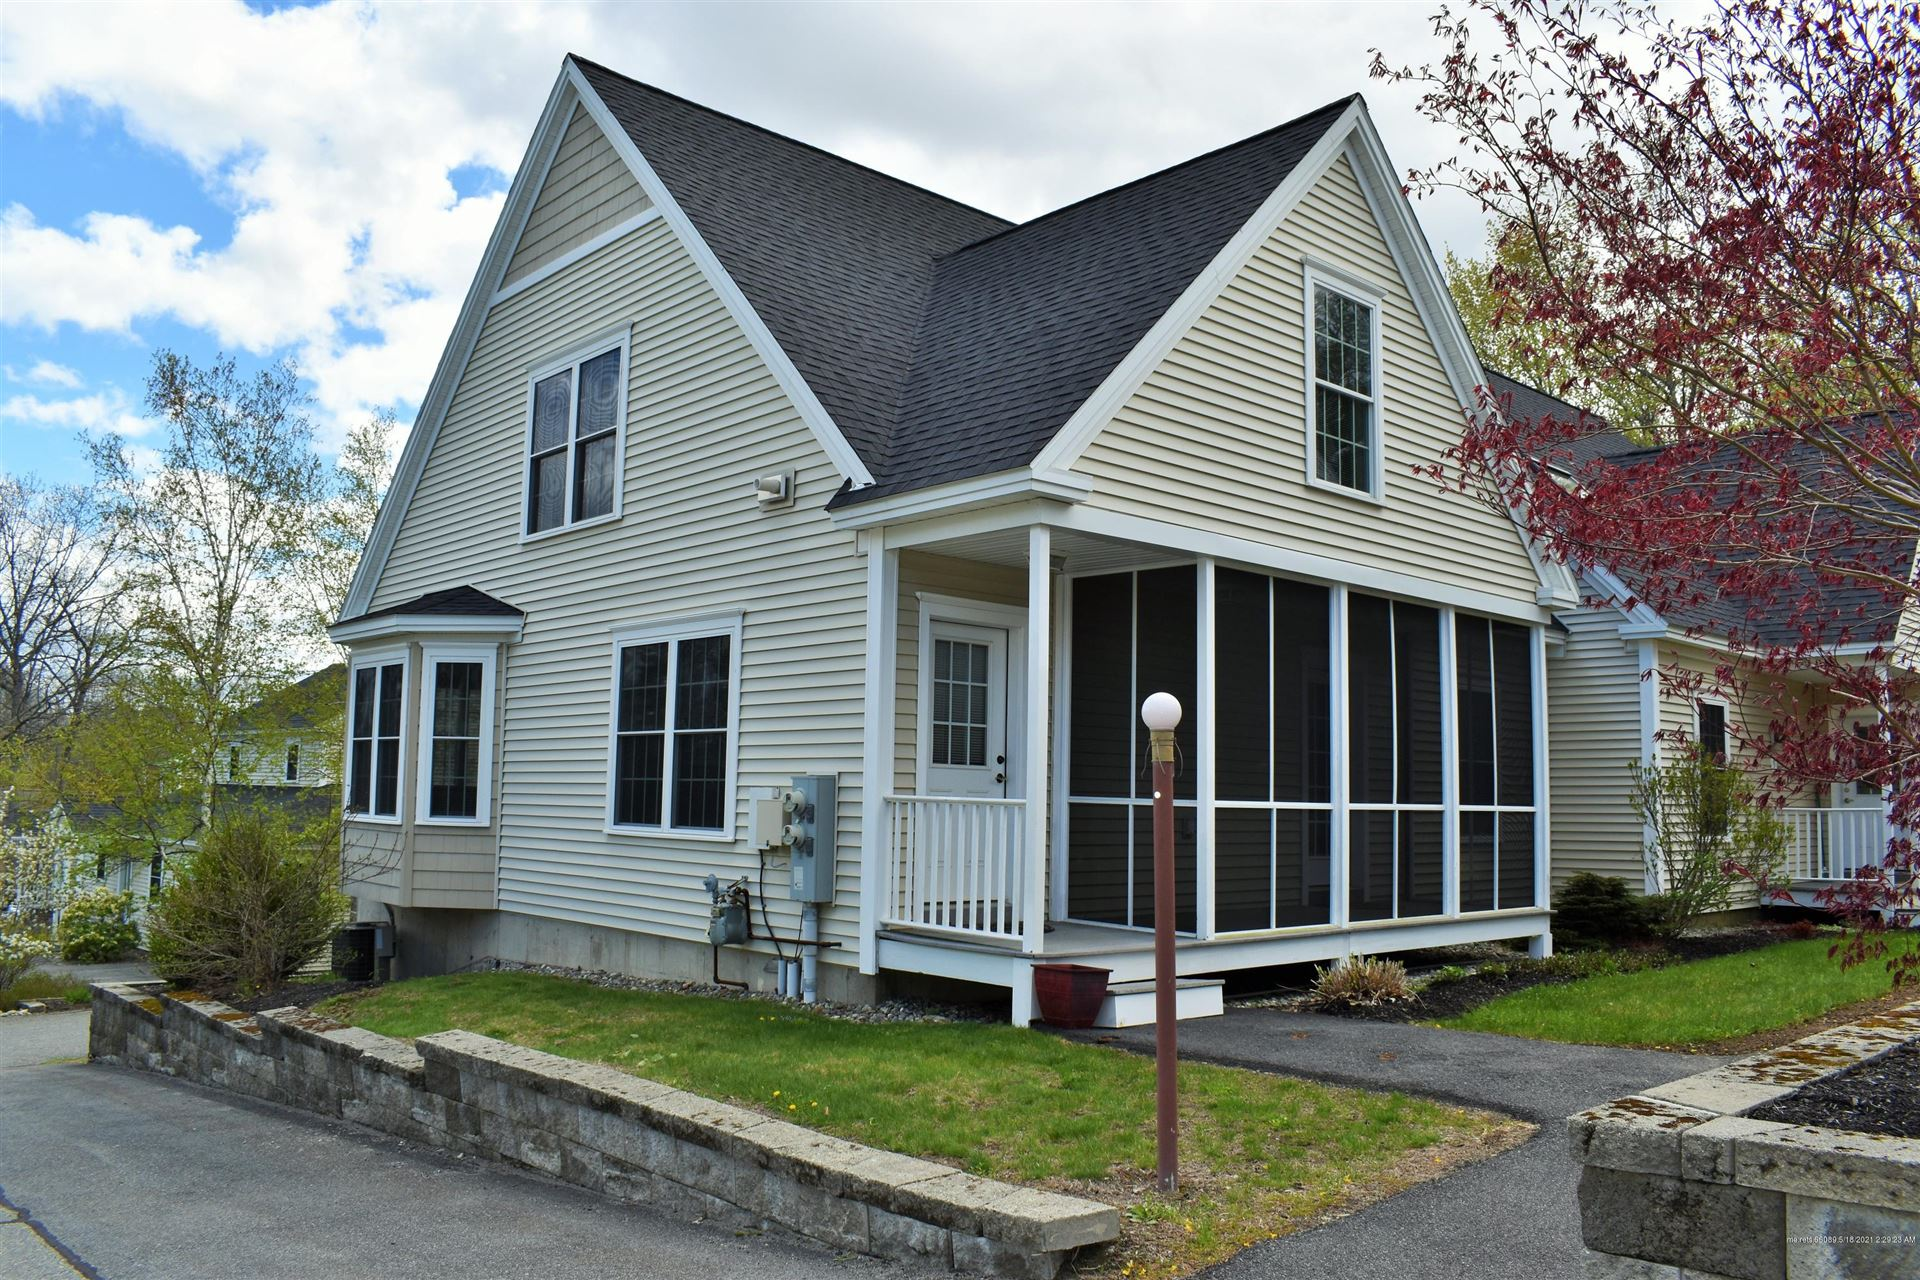 Photo of 7 Dylan Circle #7, Waterville, ME 04901 (MLS # 1491794)